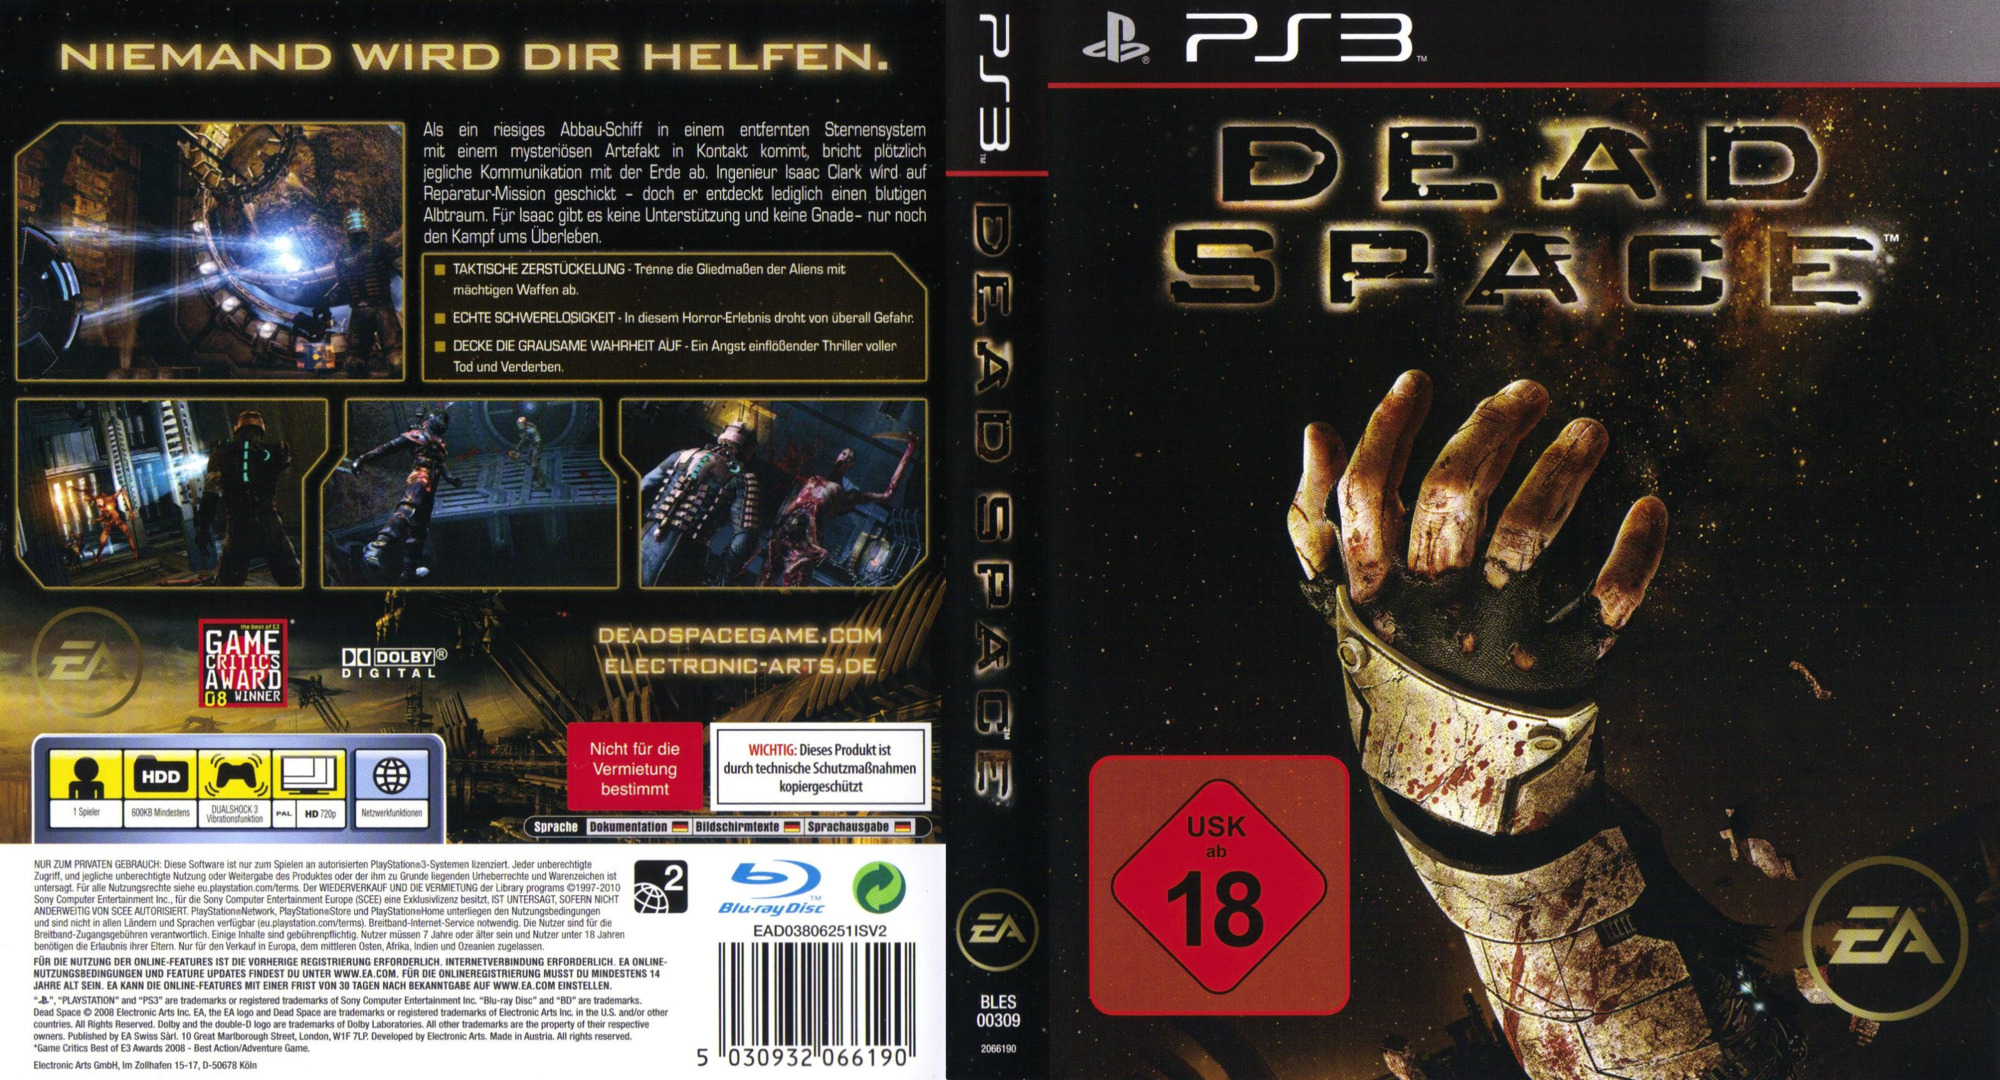 PS3 coverfullHQ2 (BLES00309)